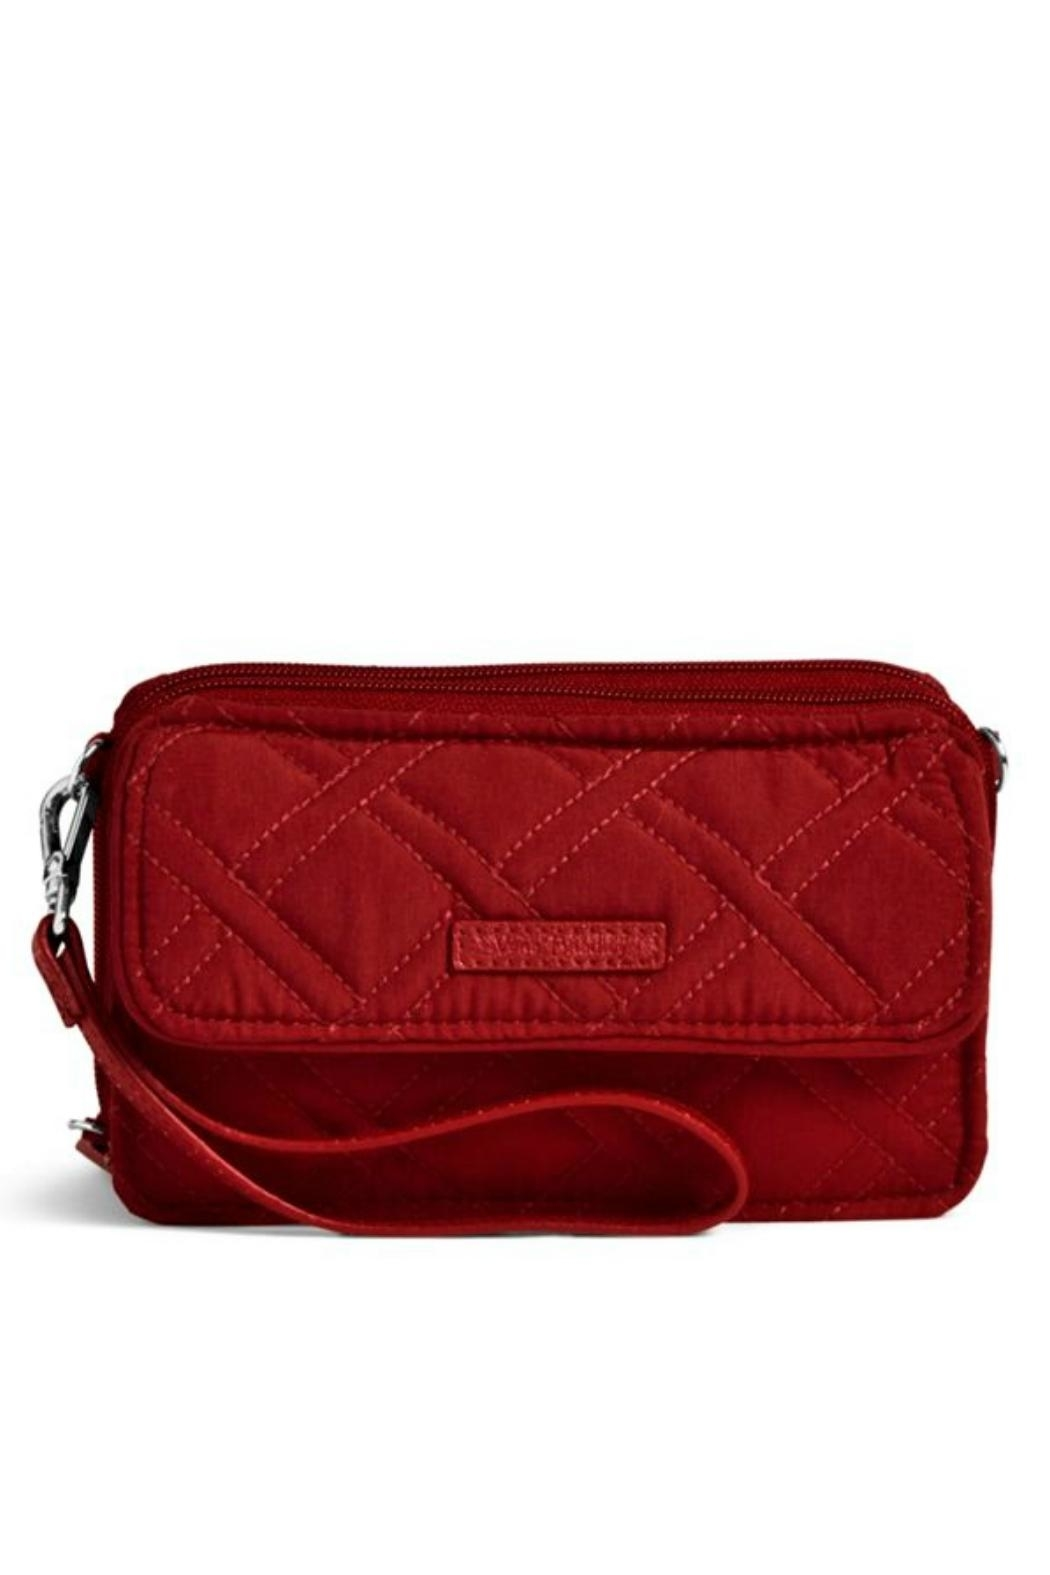 Vera Bradley Cardinal Red All-In-One - Main Image